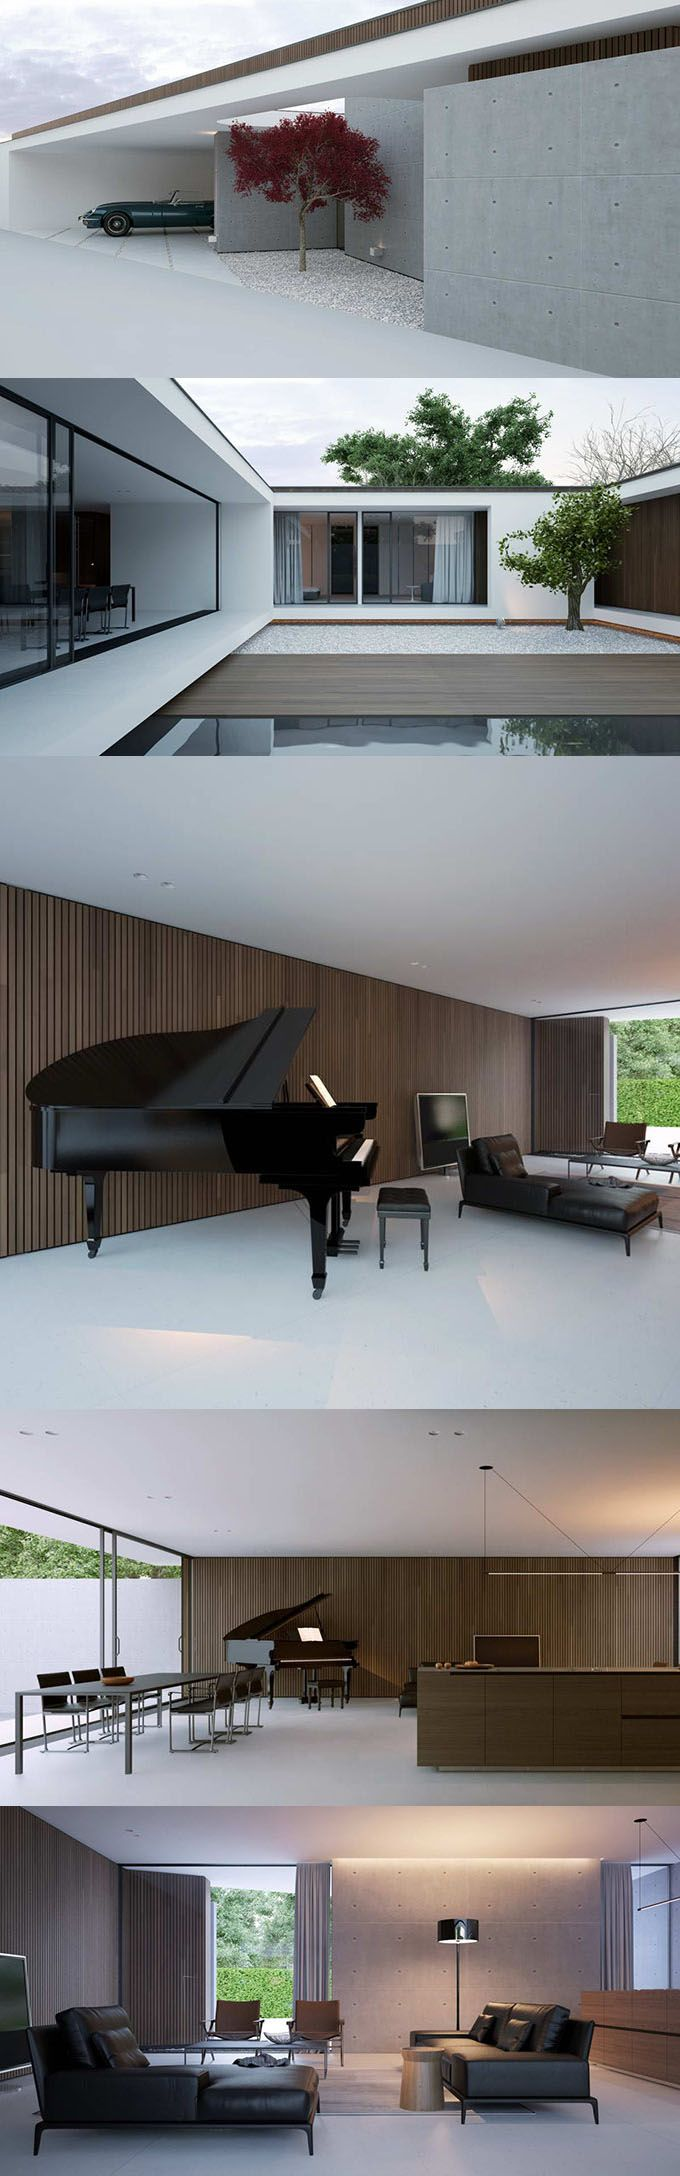 Piano House www.thecoolhunter.net/article/detail/2335/piano-house--chisinau-moldova